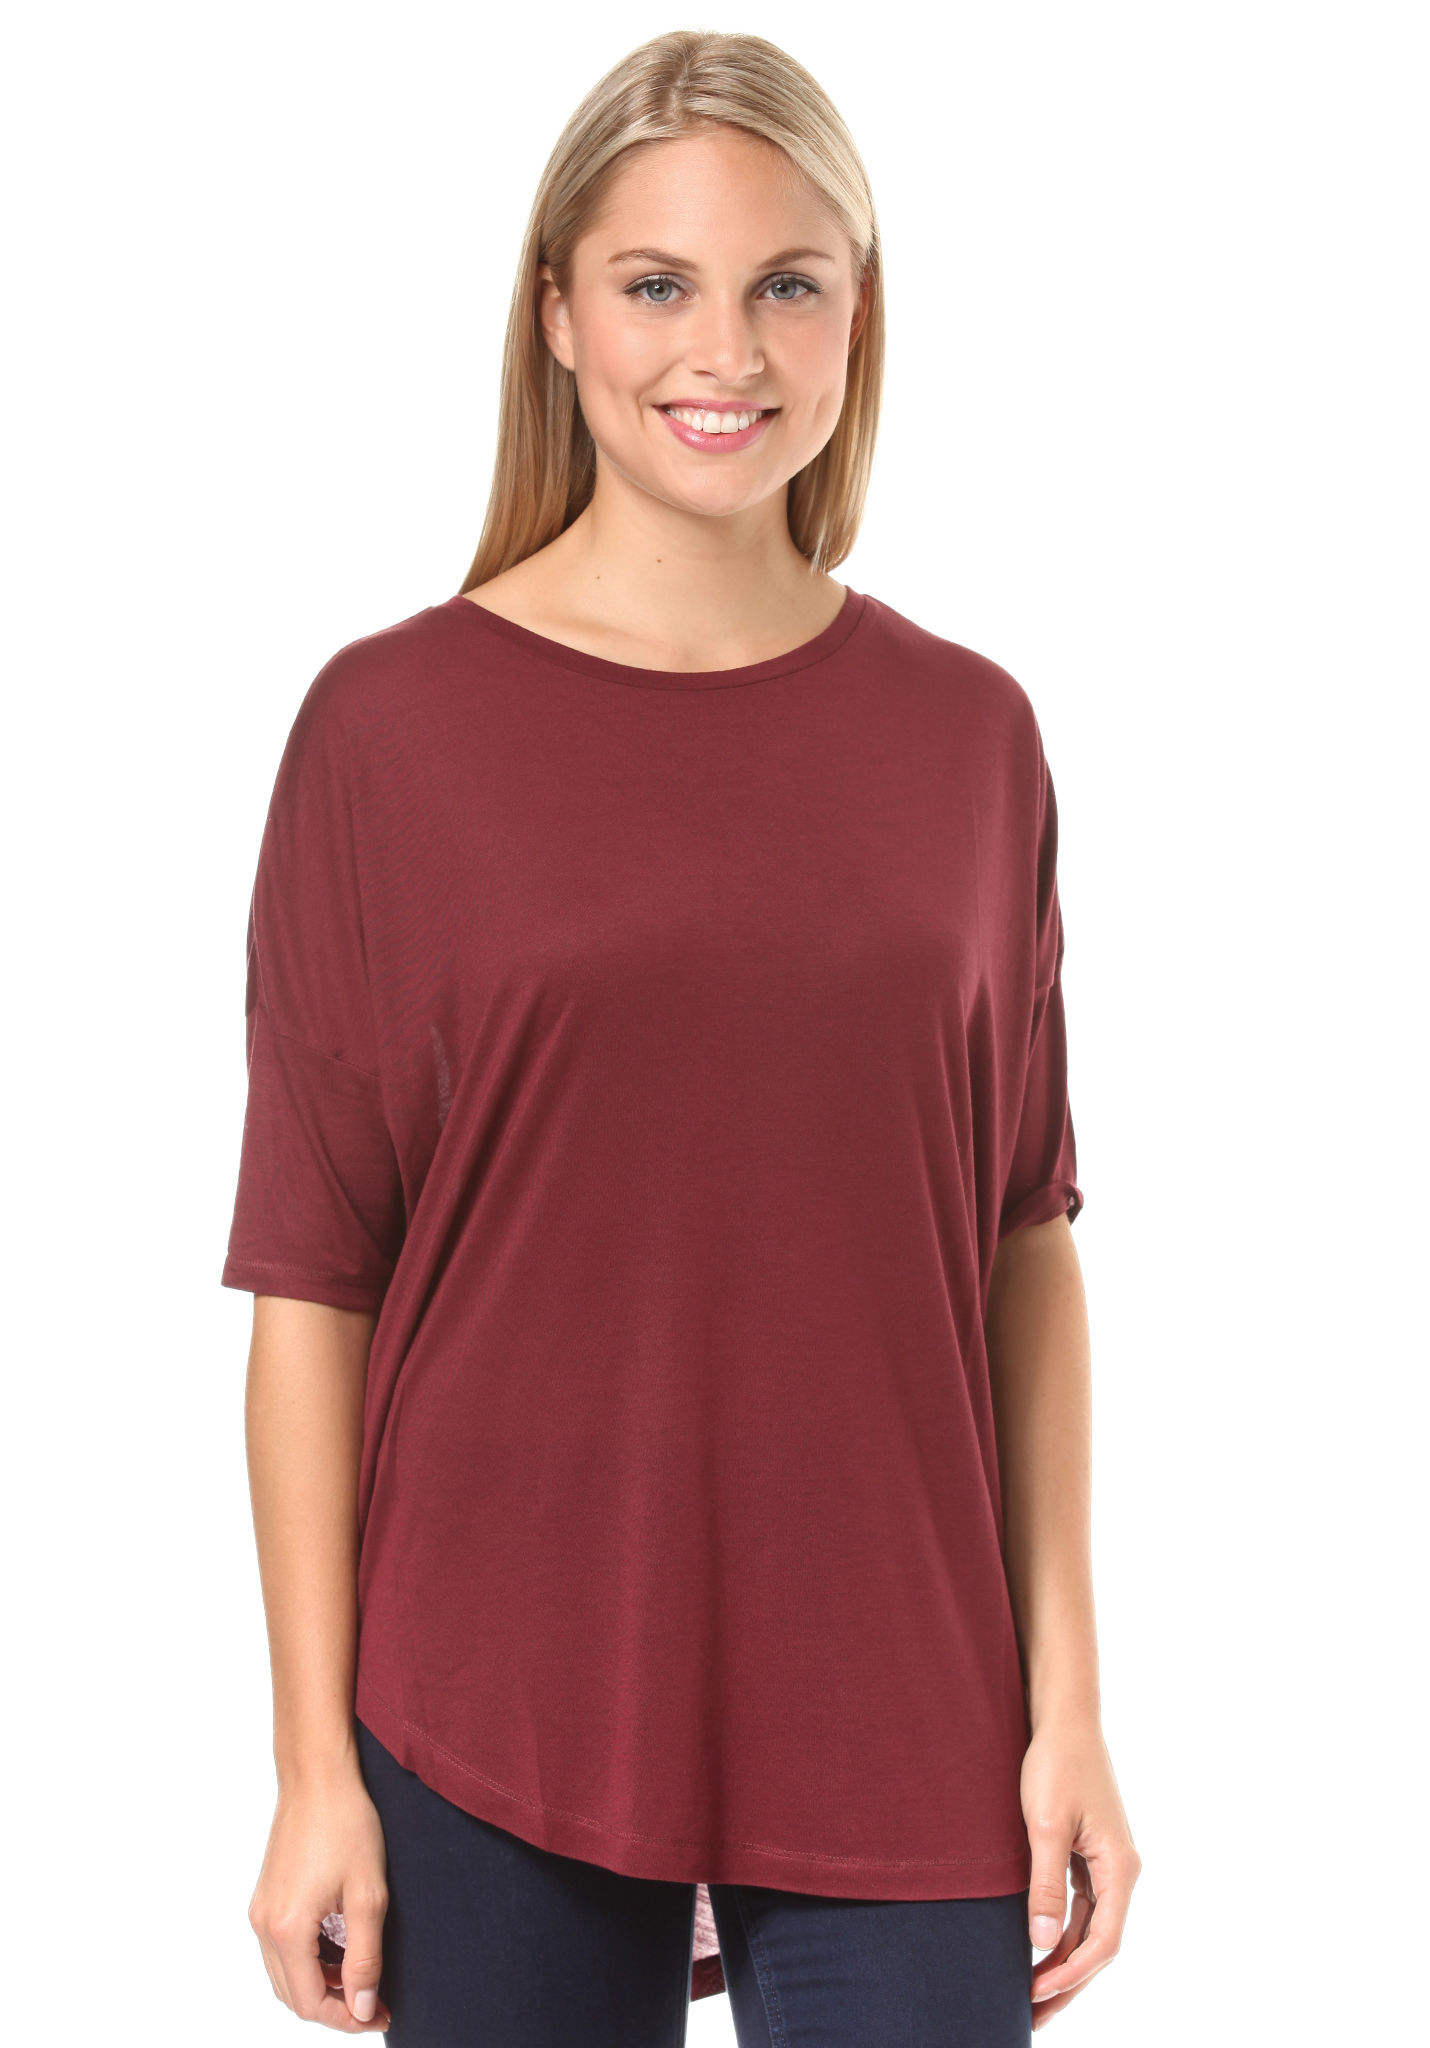 Shirt Os Pour Longues T Essentials Rouge À Femme O'neill Manches vn0OPy8wmN